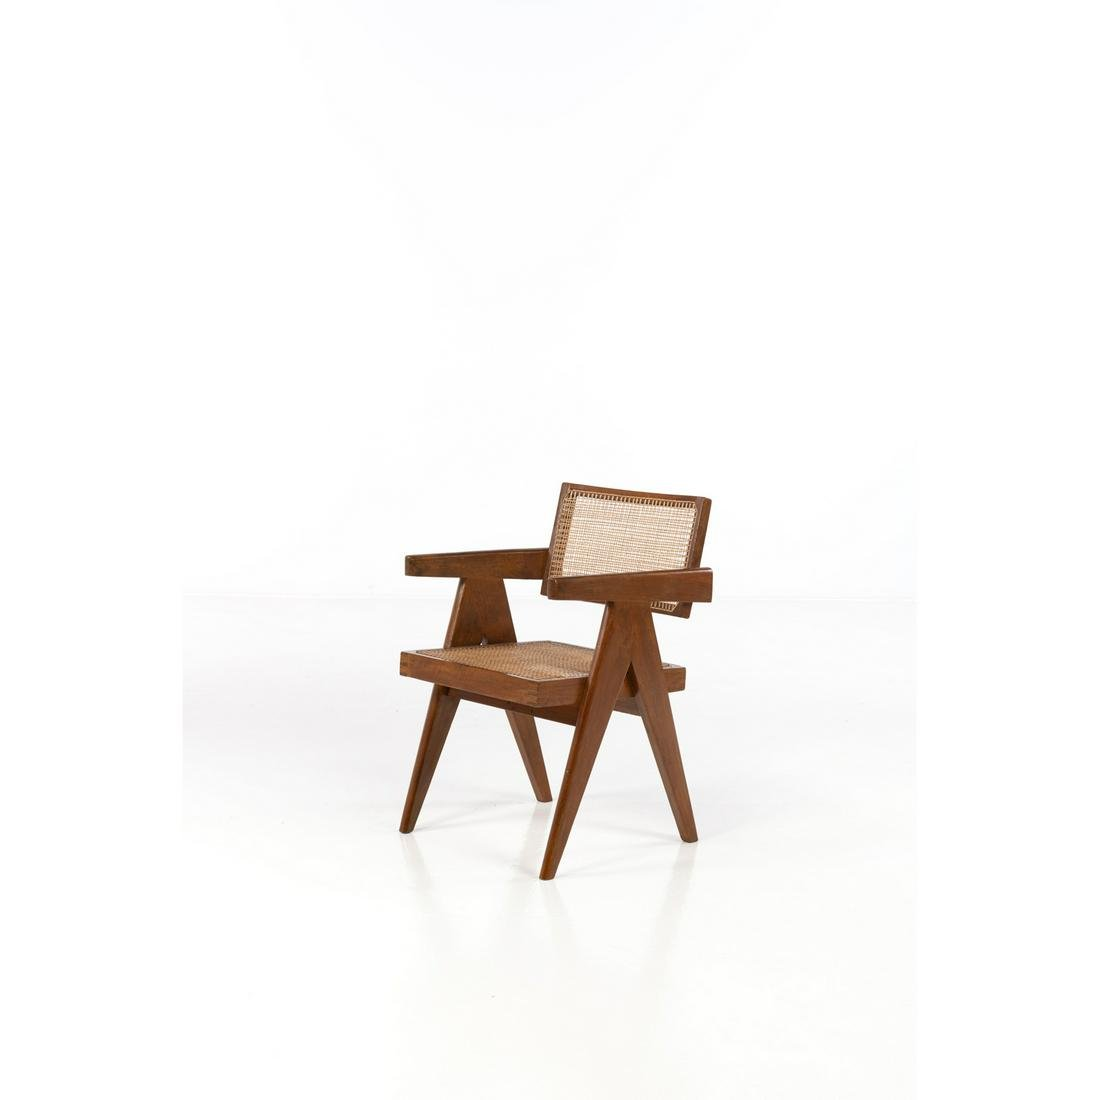 Pierre Jeanneret (1896-1967) Office chair Armchair Wood